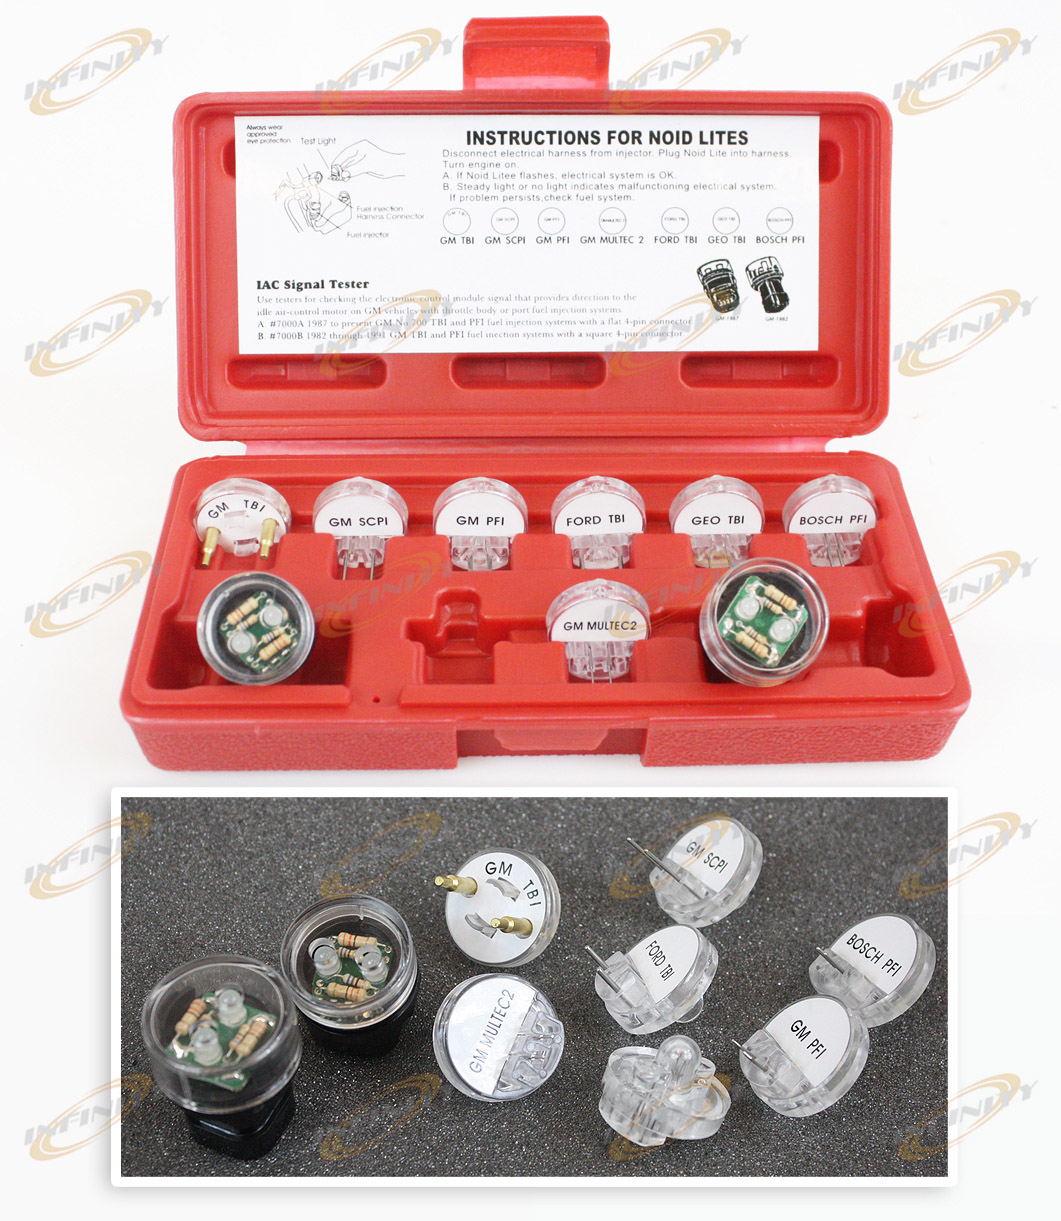 9 ELECTRONIC FUEL INJECTION NOID LITE SET SIGNAL TESTER